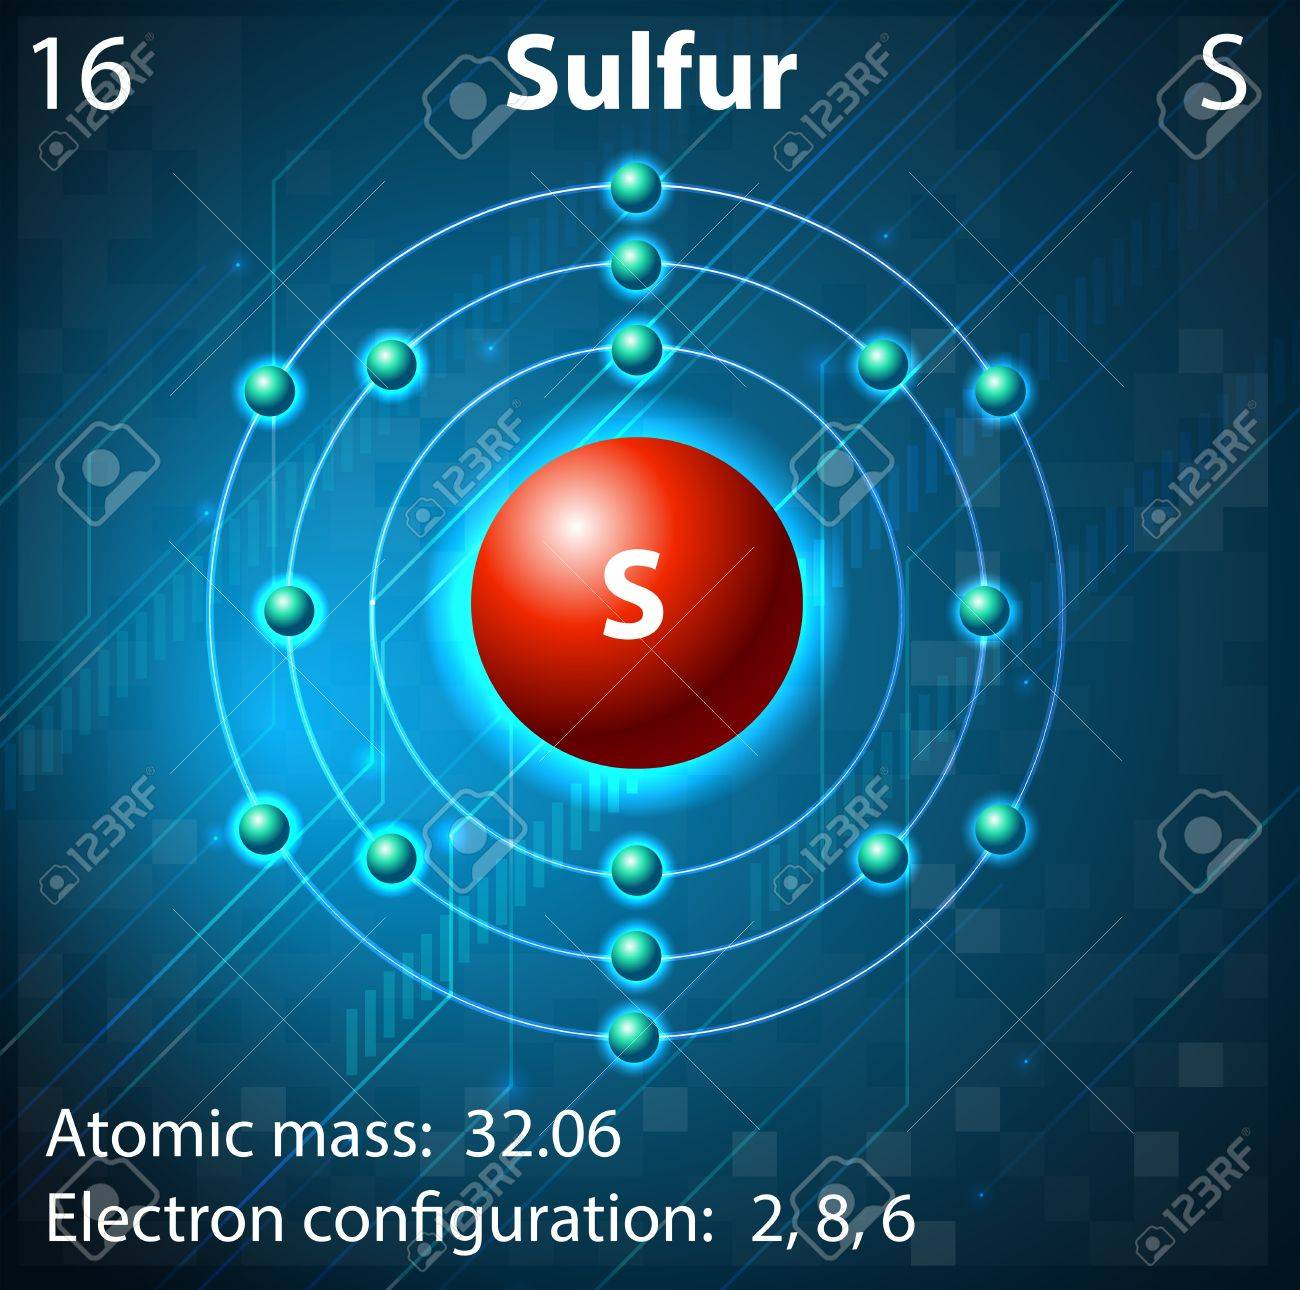 Illustration of the element Sulfur Stock Vector - 21832245